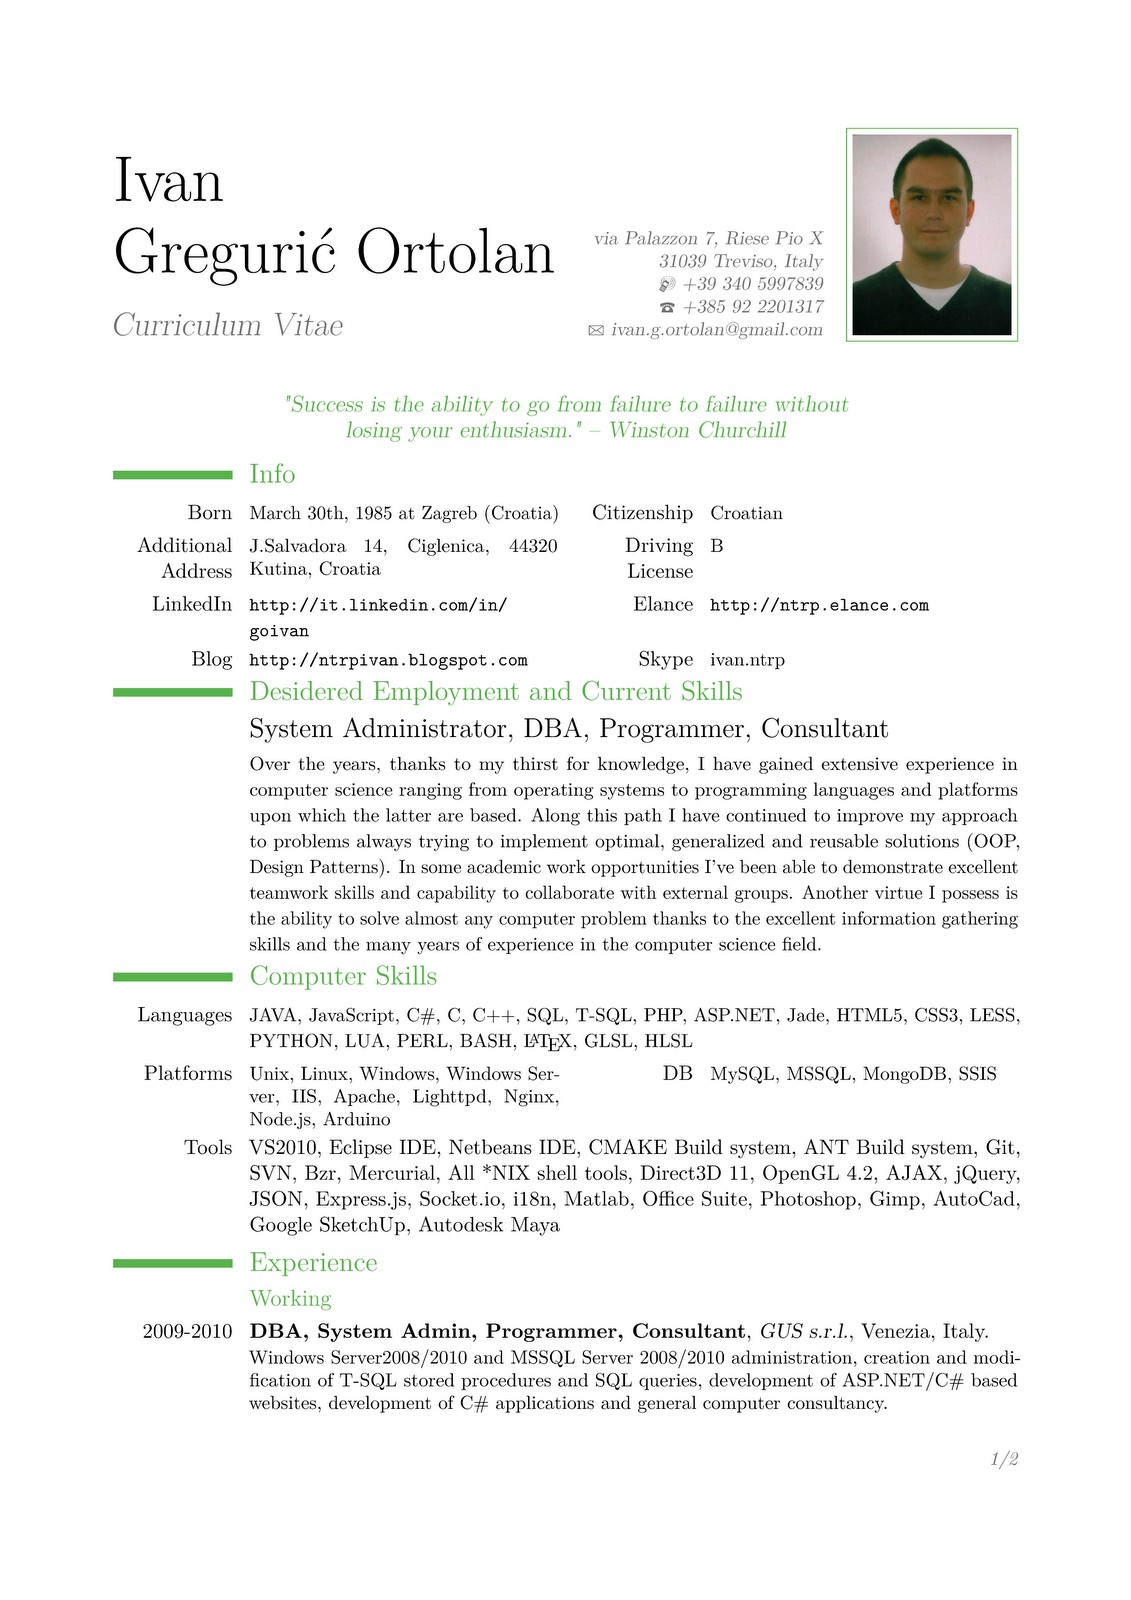 resume cv sample resume cv sample resume cv sample resume template ...